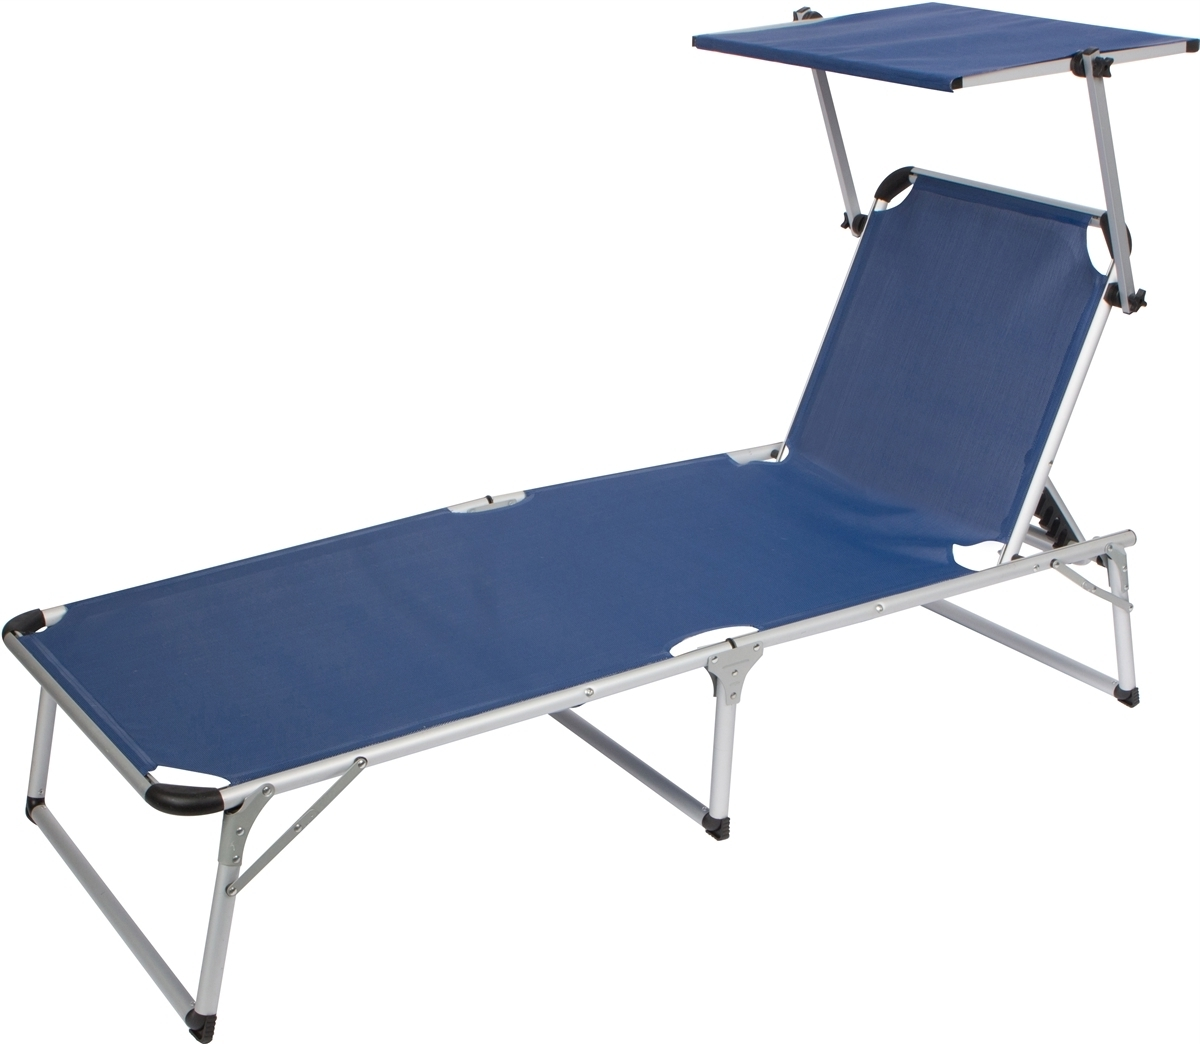 Chaise Lounge Chair With Canopy Throughout Newest Adjustable Beach Chairs – Sadgururocks (View 9 of 15)